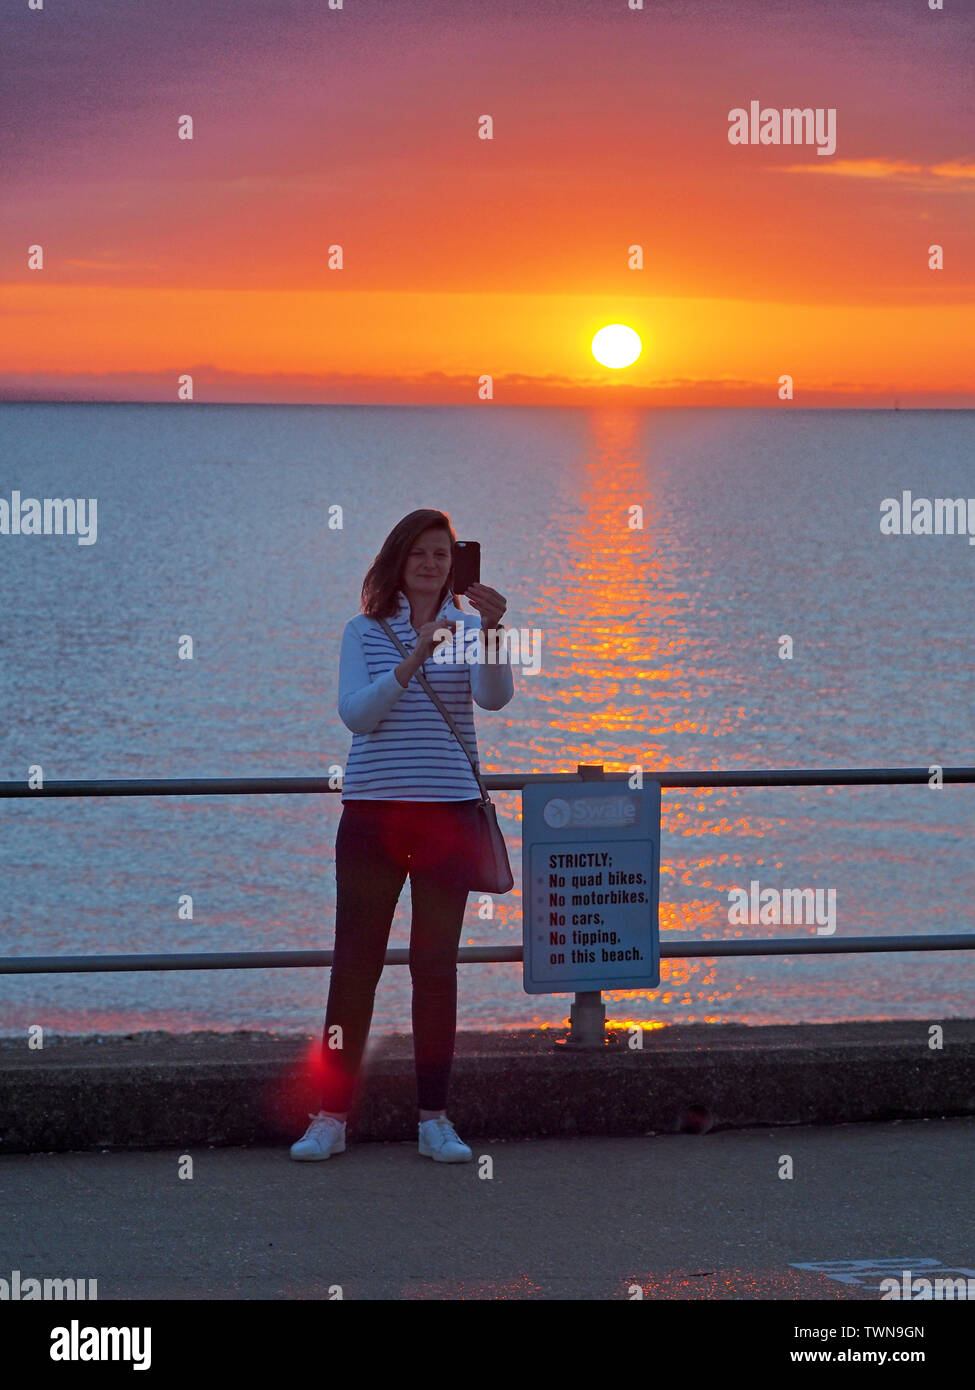 Minster on Sea, Kent, UK. 22nd June, 2019. UK Weather: a glorious sunrise in Minster on Sea, Kent with good weather forecast for today. Credit: James Bell/Alamy Live News - Stock Image